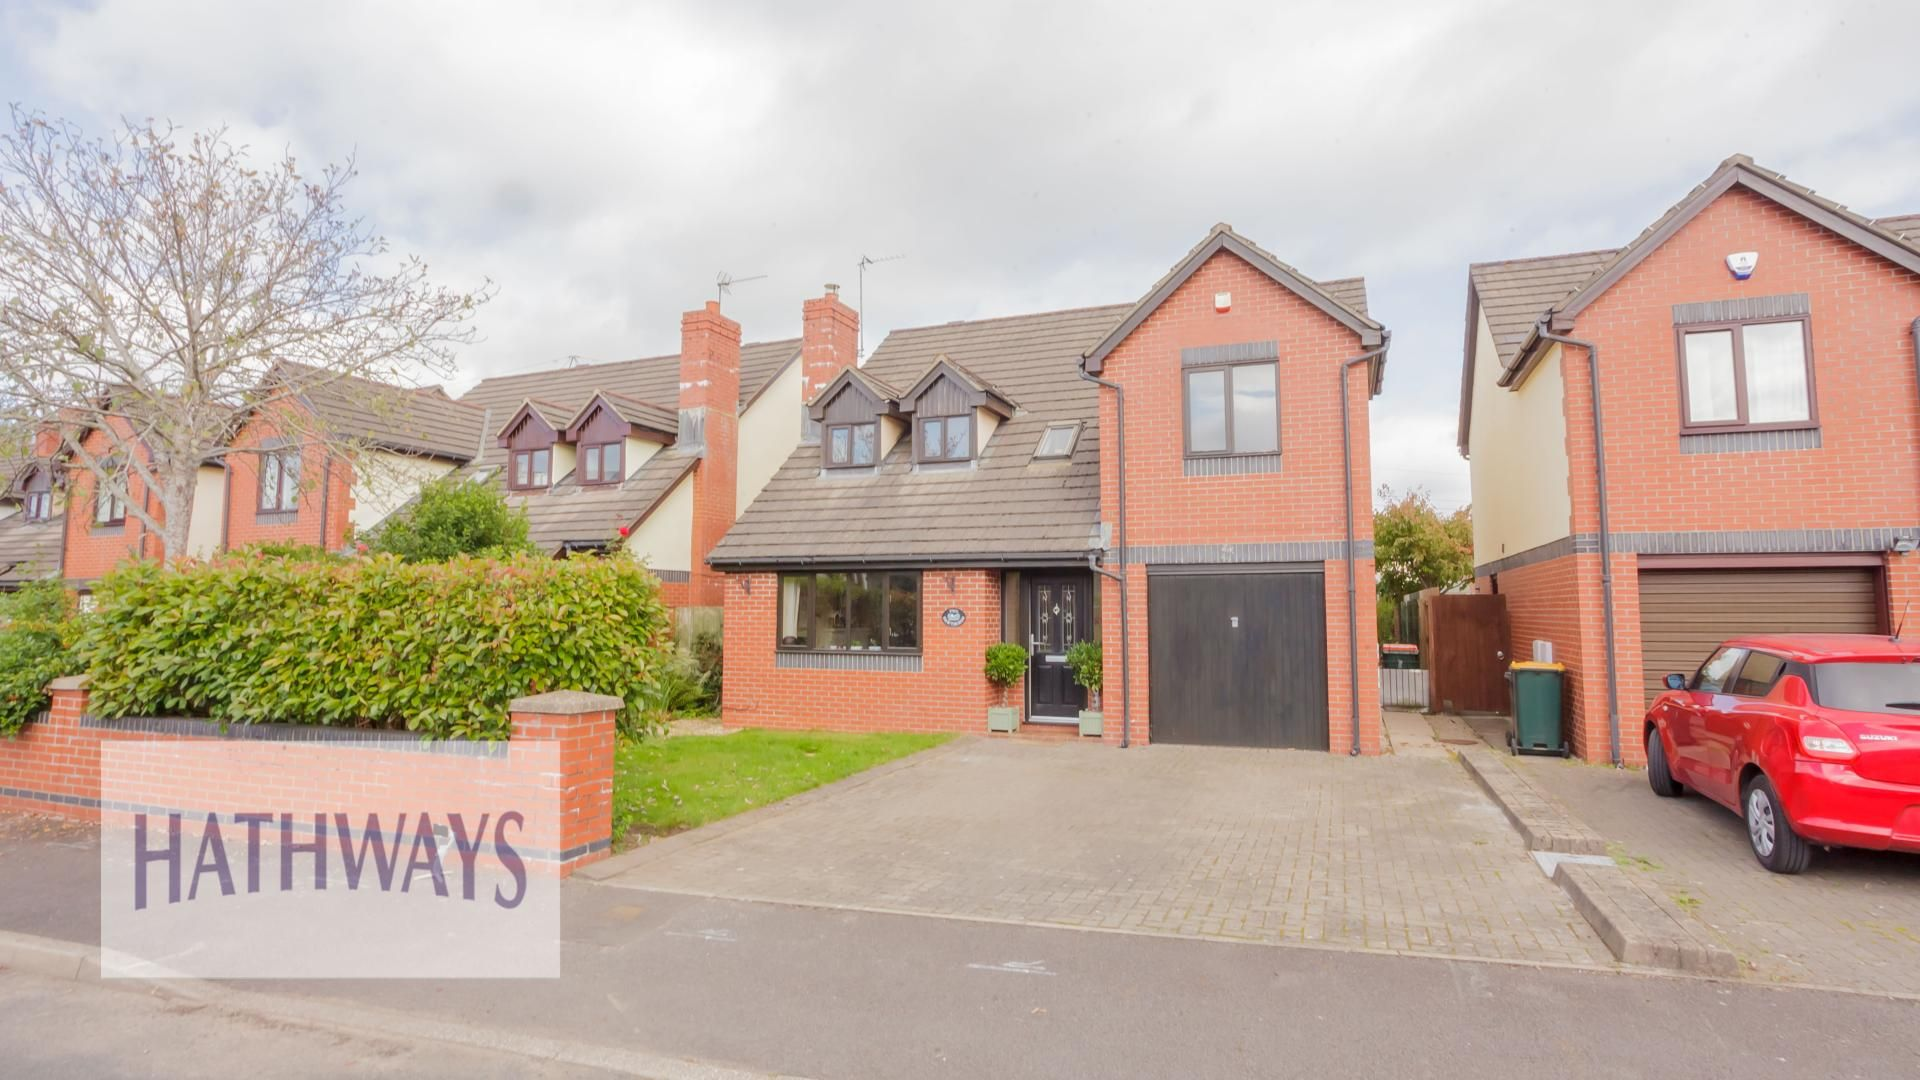 4 bed house for sale in The Hawthorns, NP18